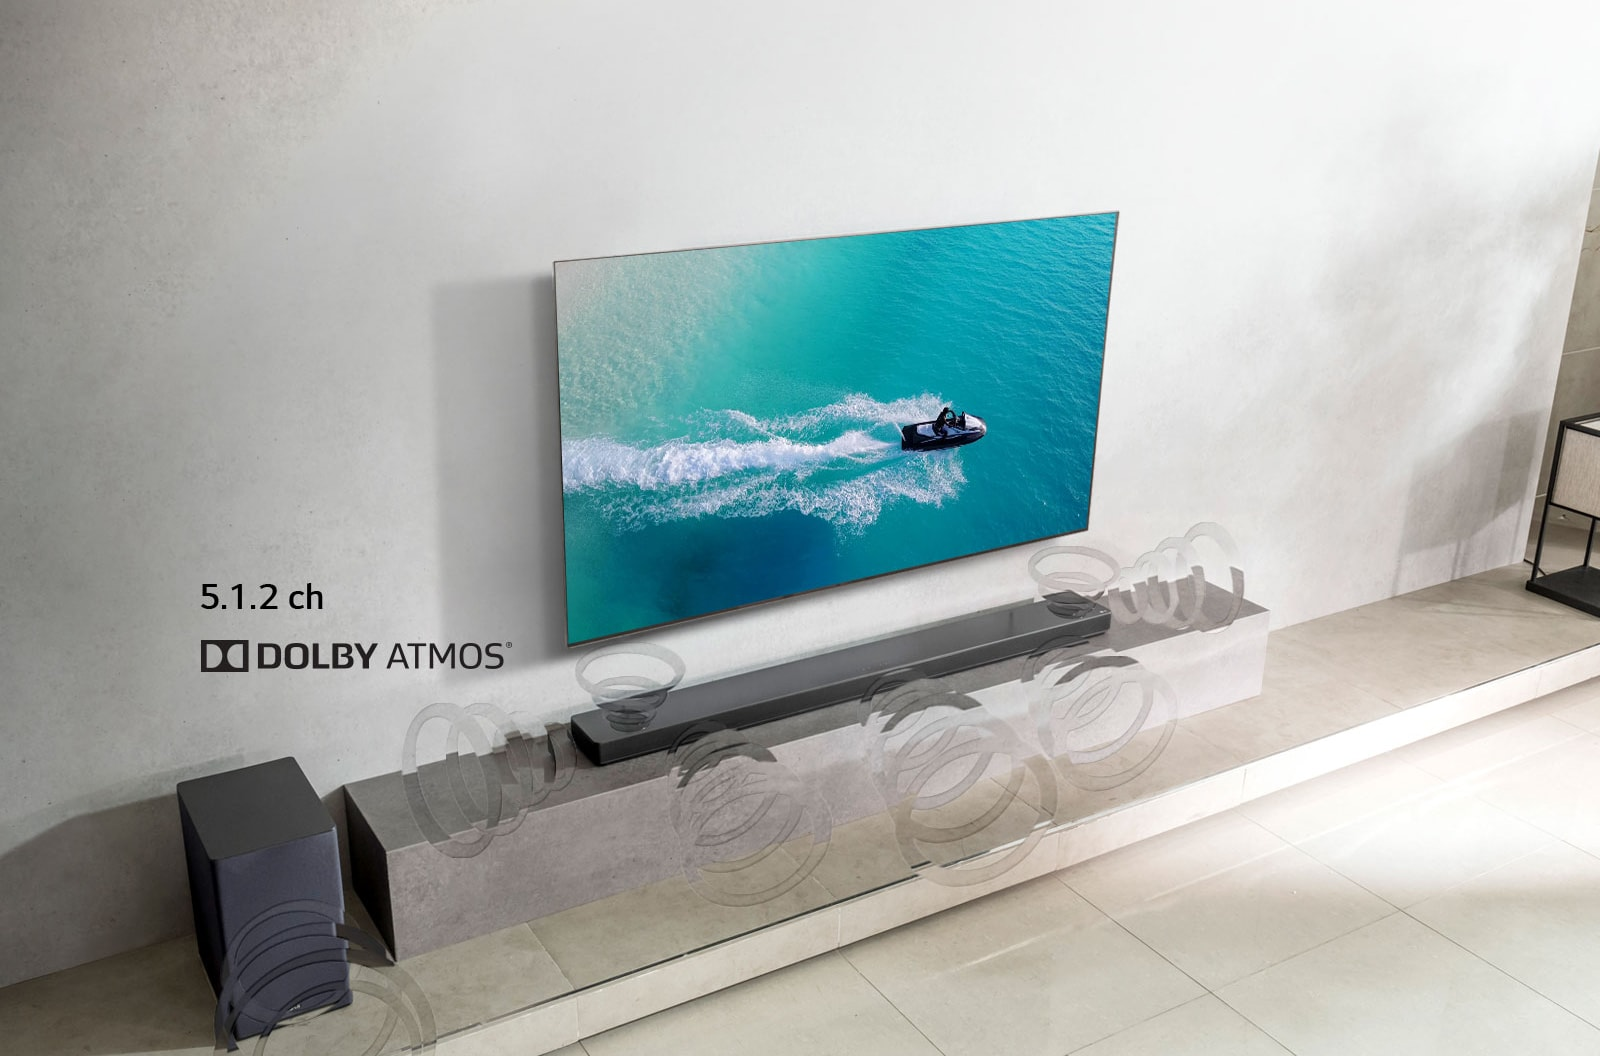 LG SK10Y 5 1 2 Channel High Resolution Audio Sound Bar w/ Meridian  Technology & Dolby Atmos